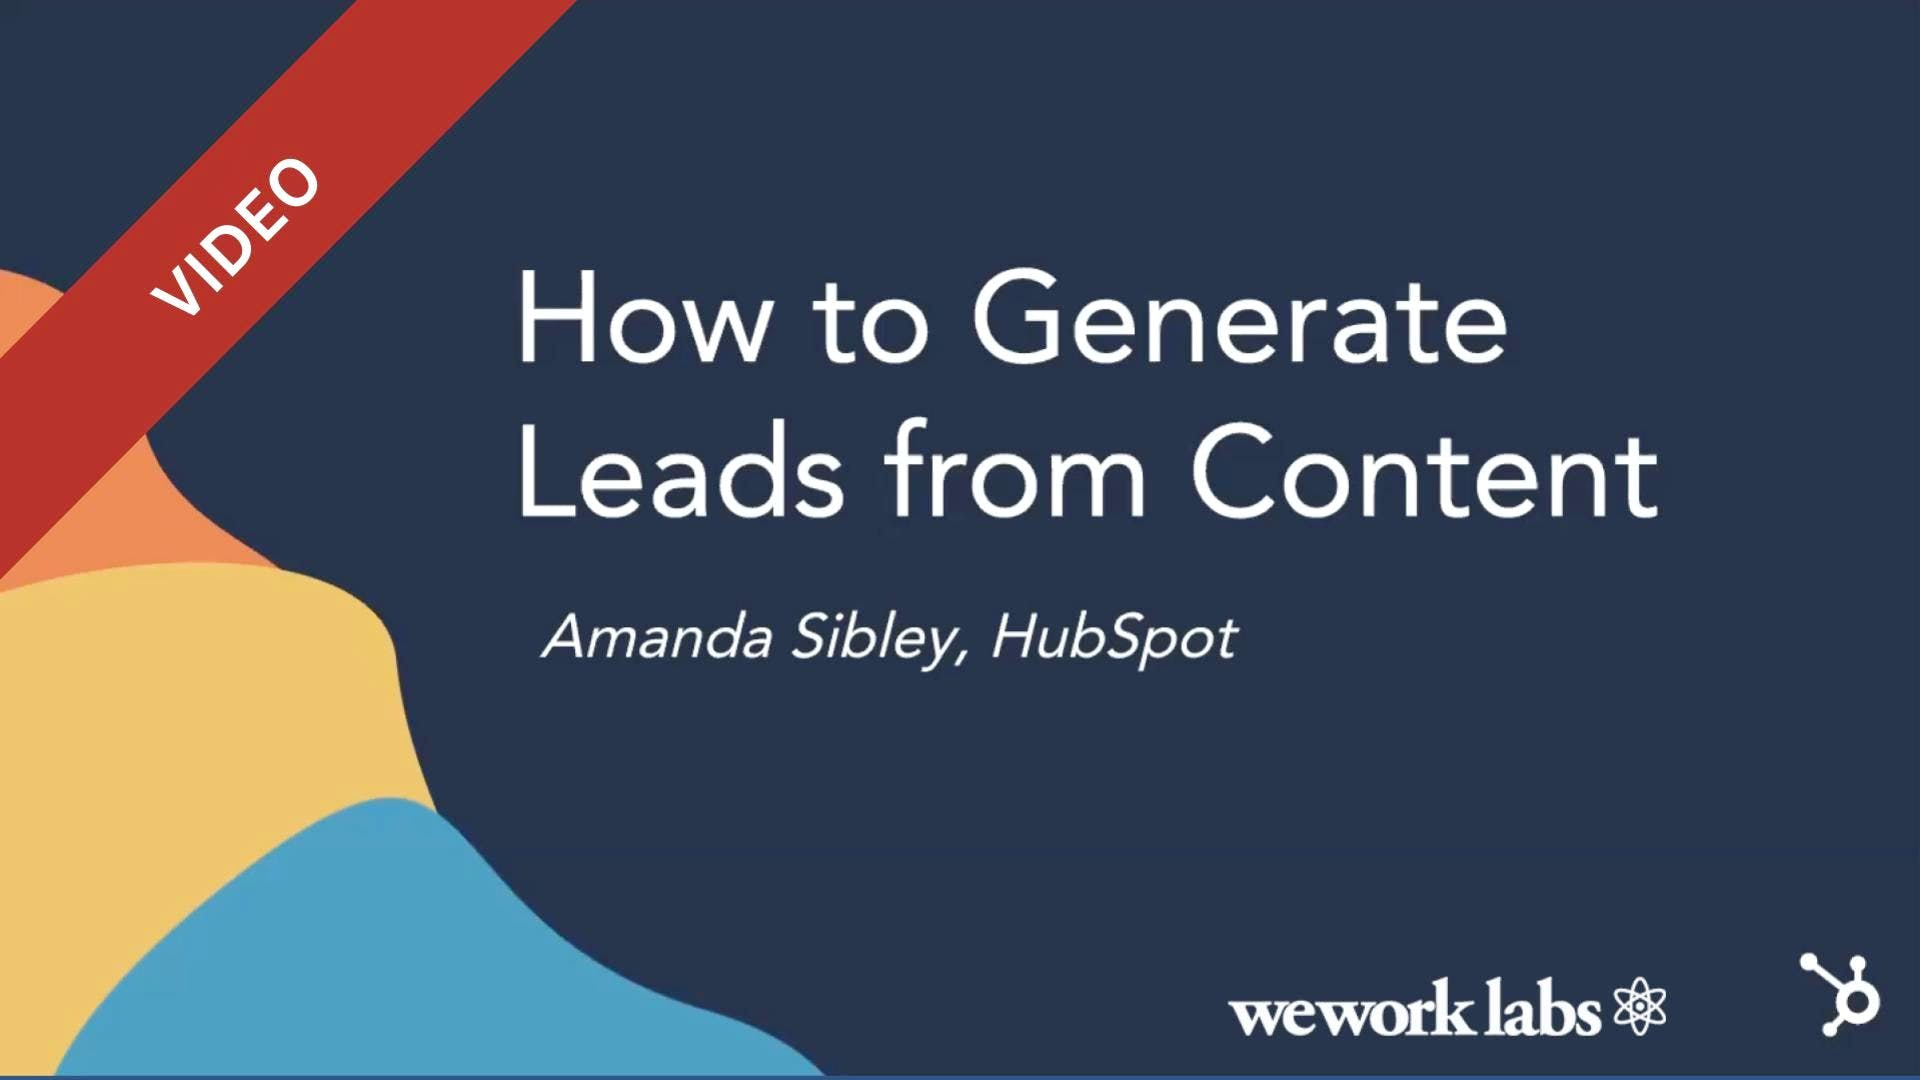 How to Generate Leads from Content